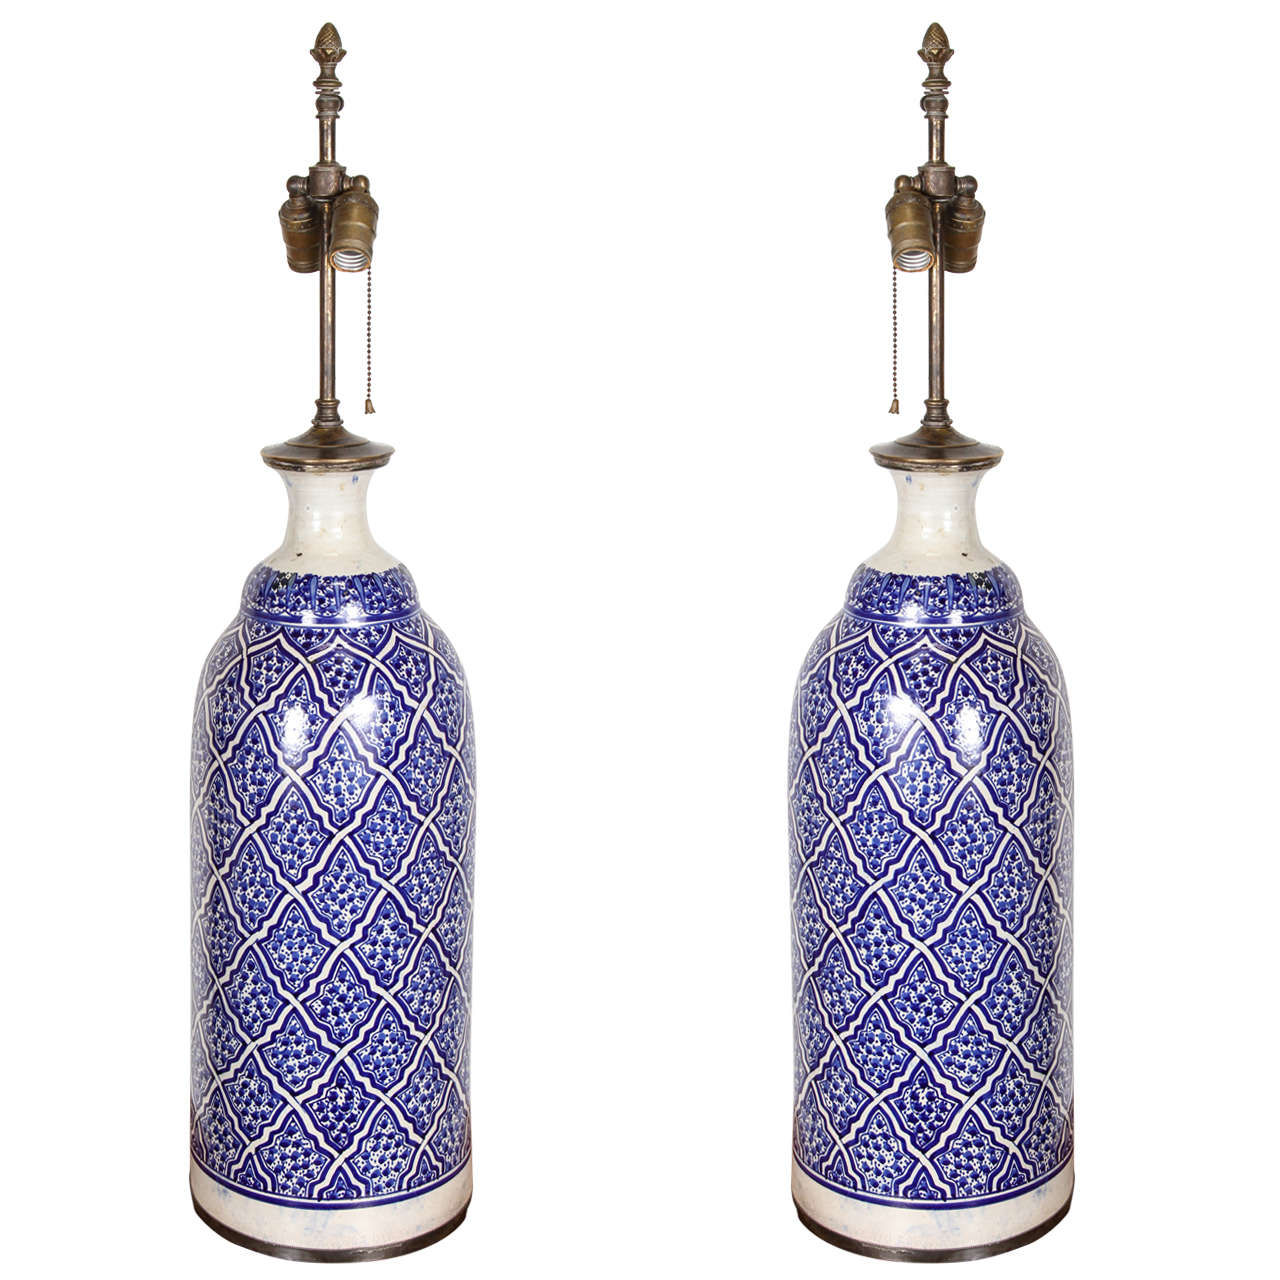 moroccan ceramic table lamps from fez at 1stdibs. Black Bedroom Furniture Sets. Home Design Ideas